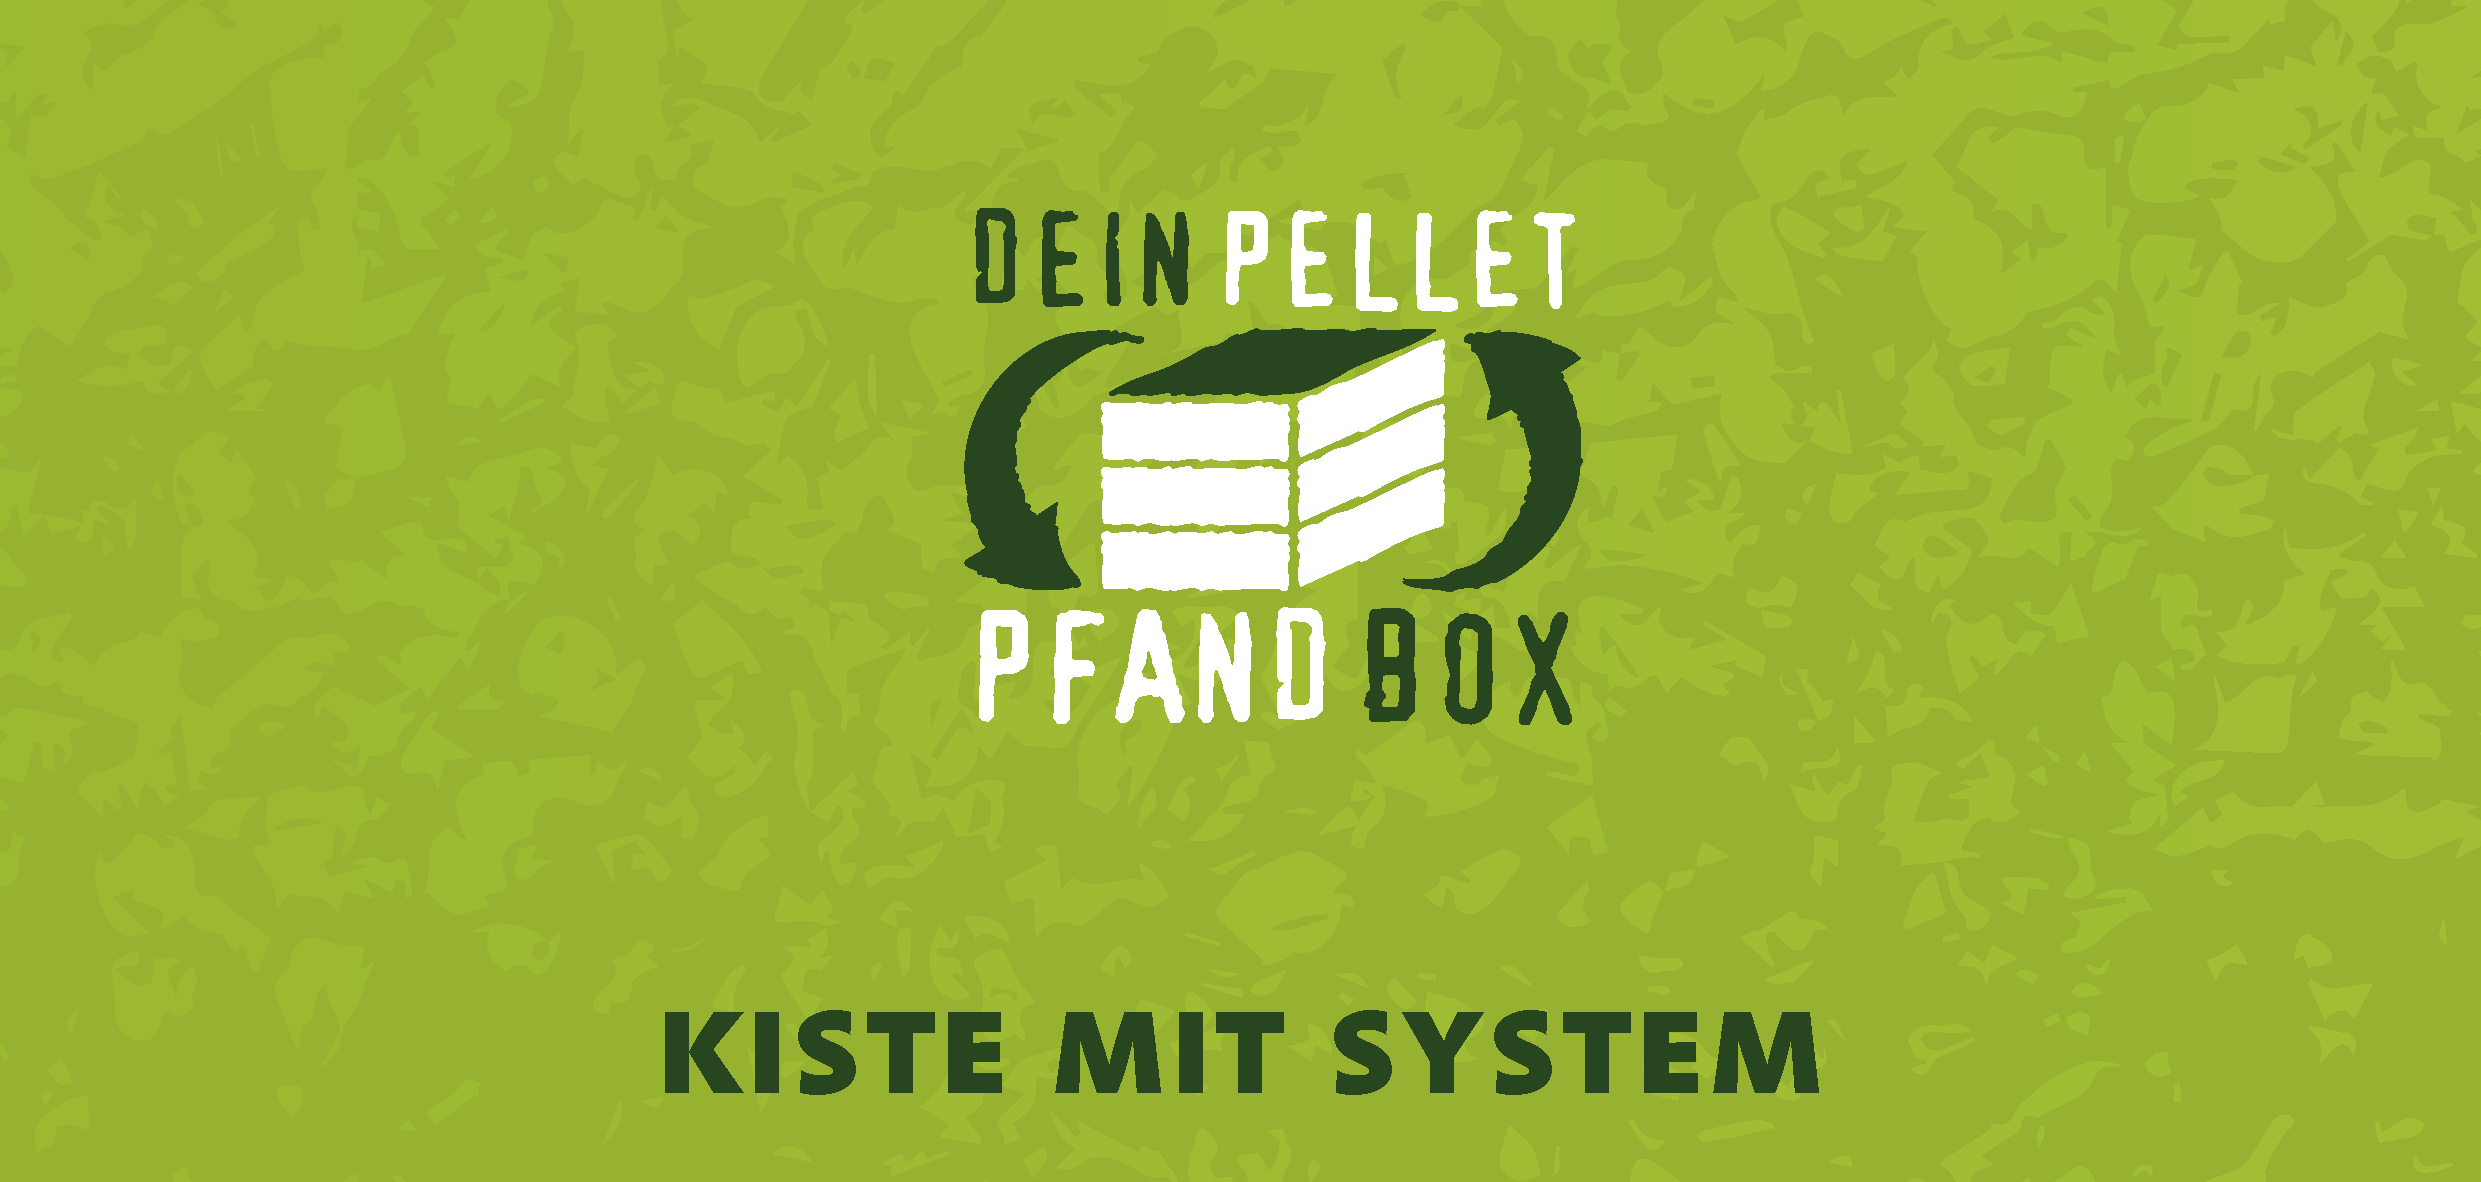 DEINPELLET Pfandbox-Flyer